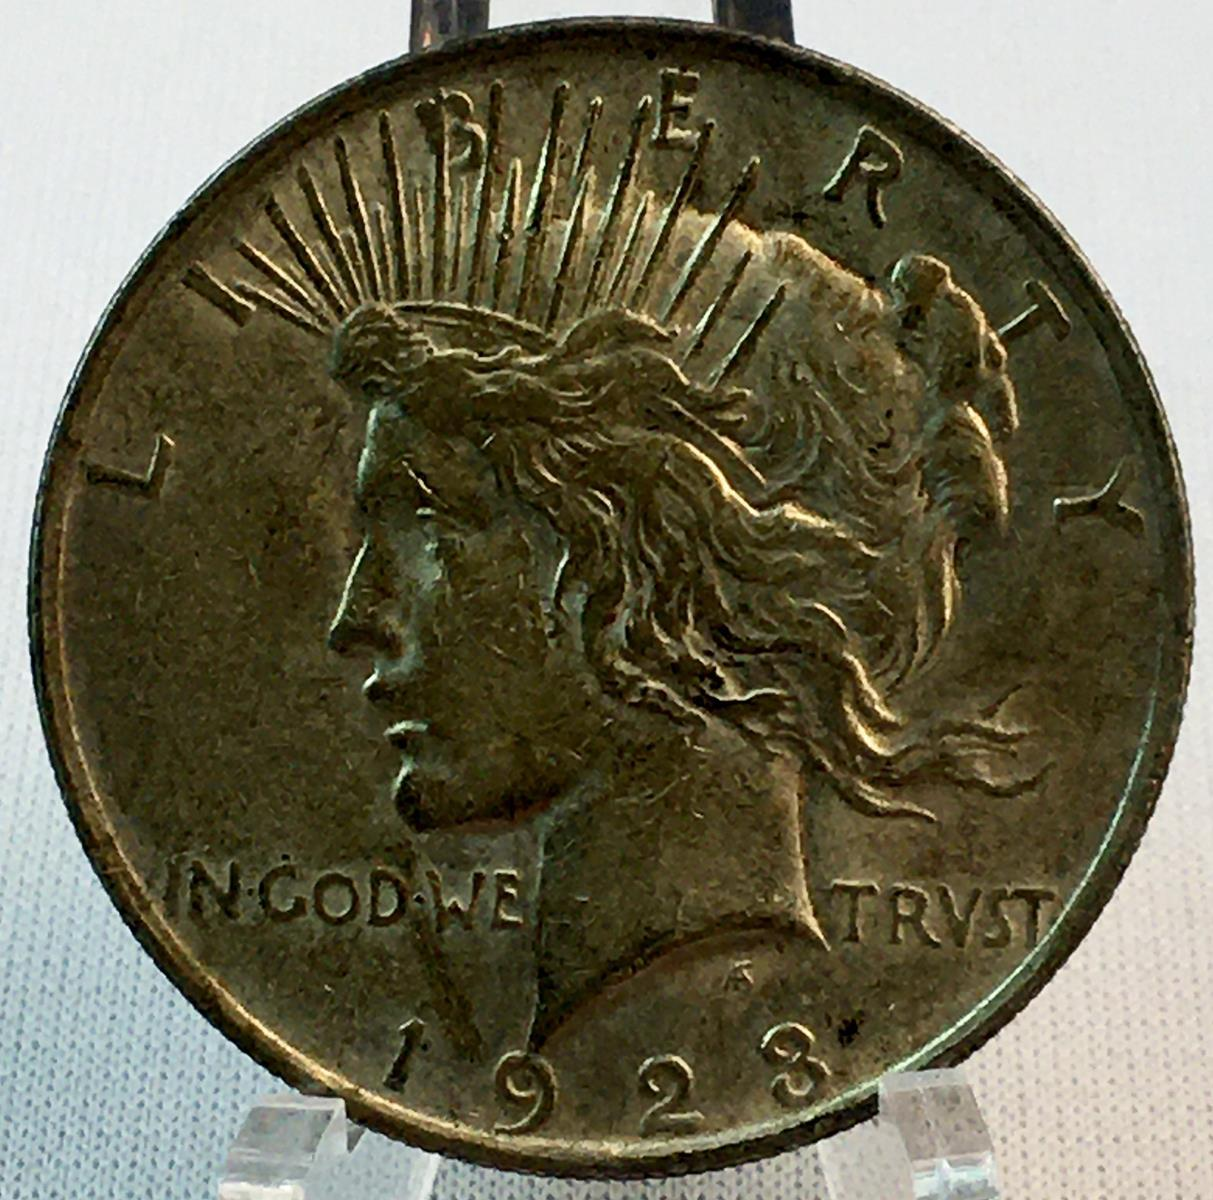 1923 US $1 Peace Silver Dollar